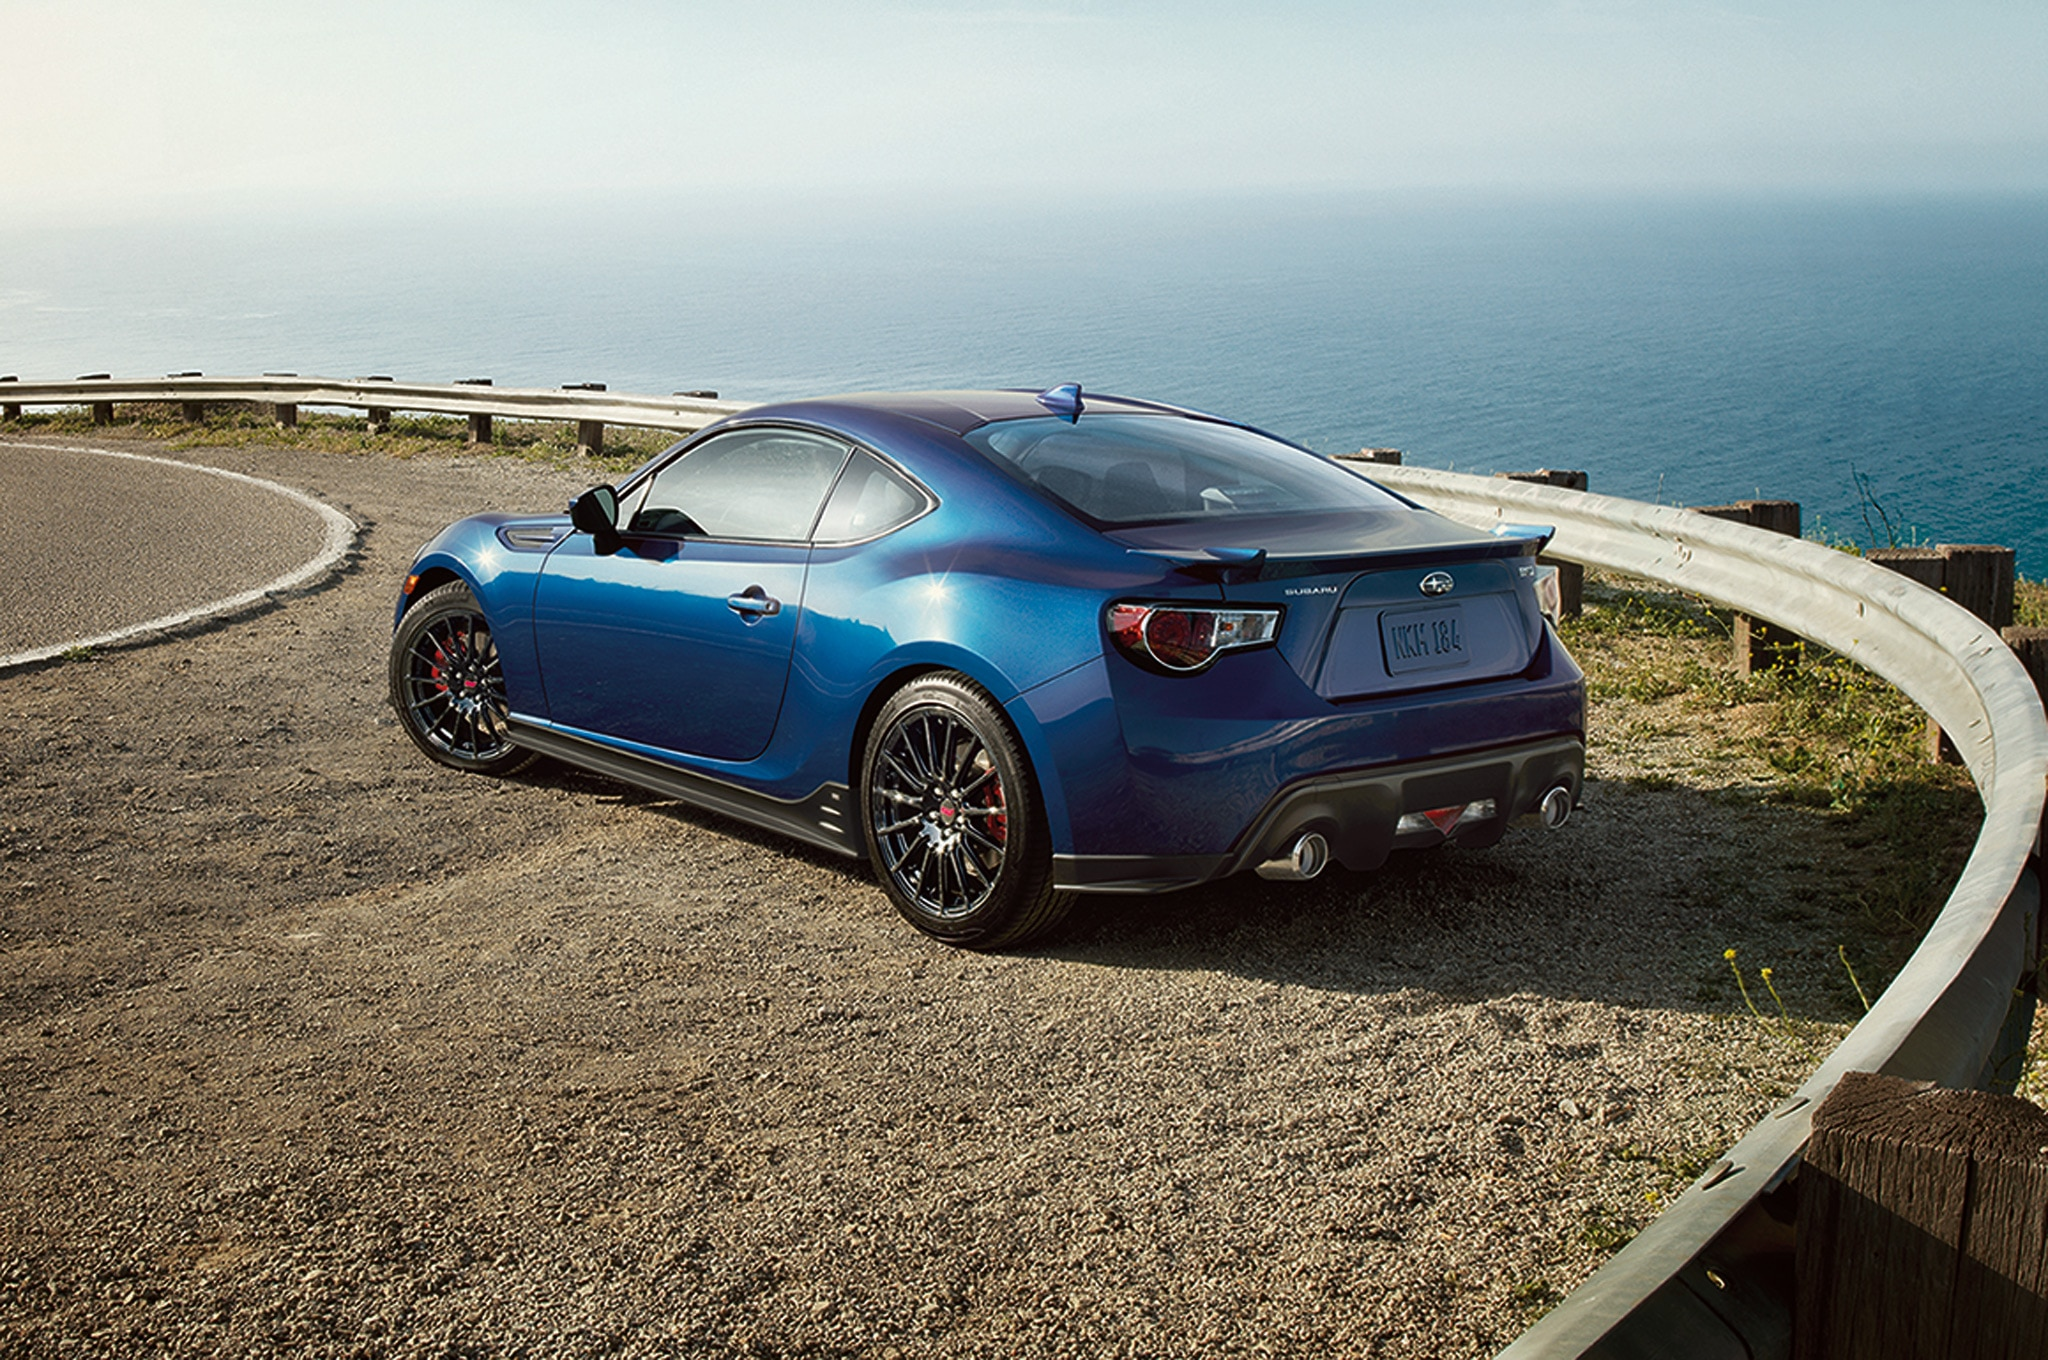 2015 Subaru BRZ Series Blue Rear Side View1